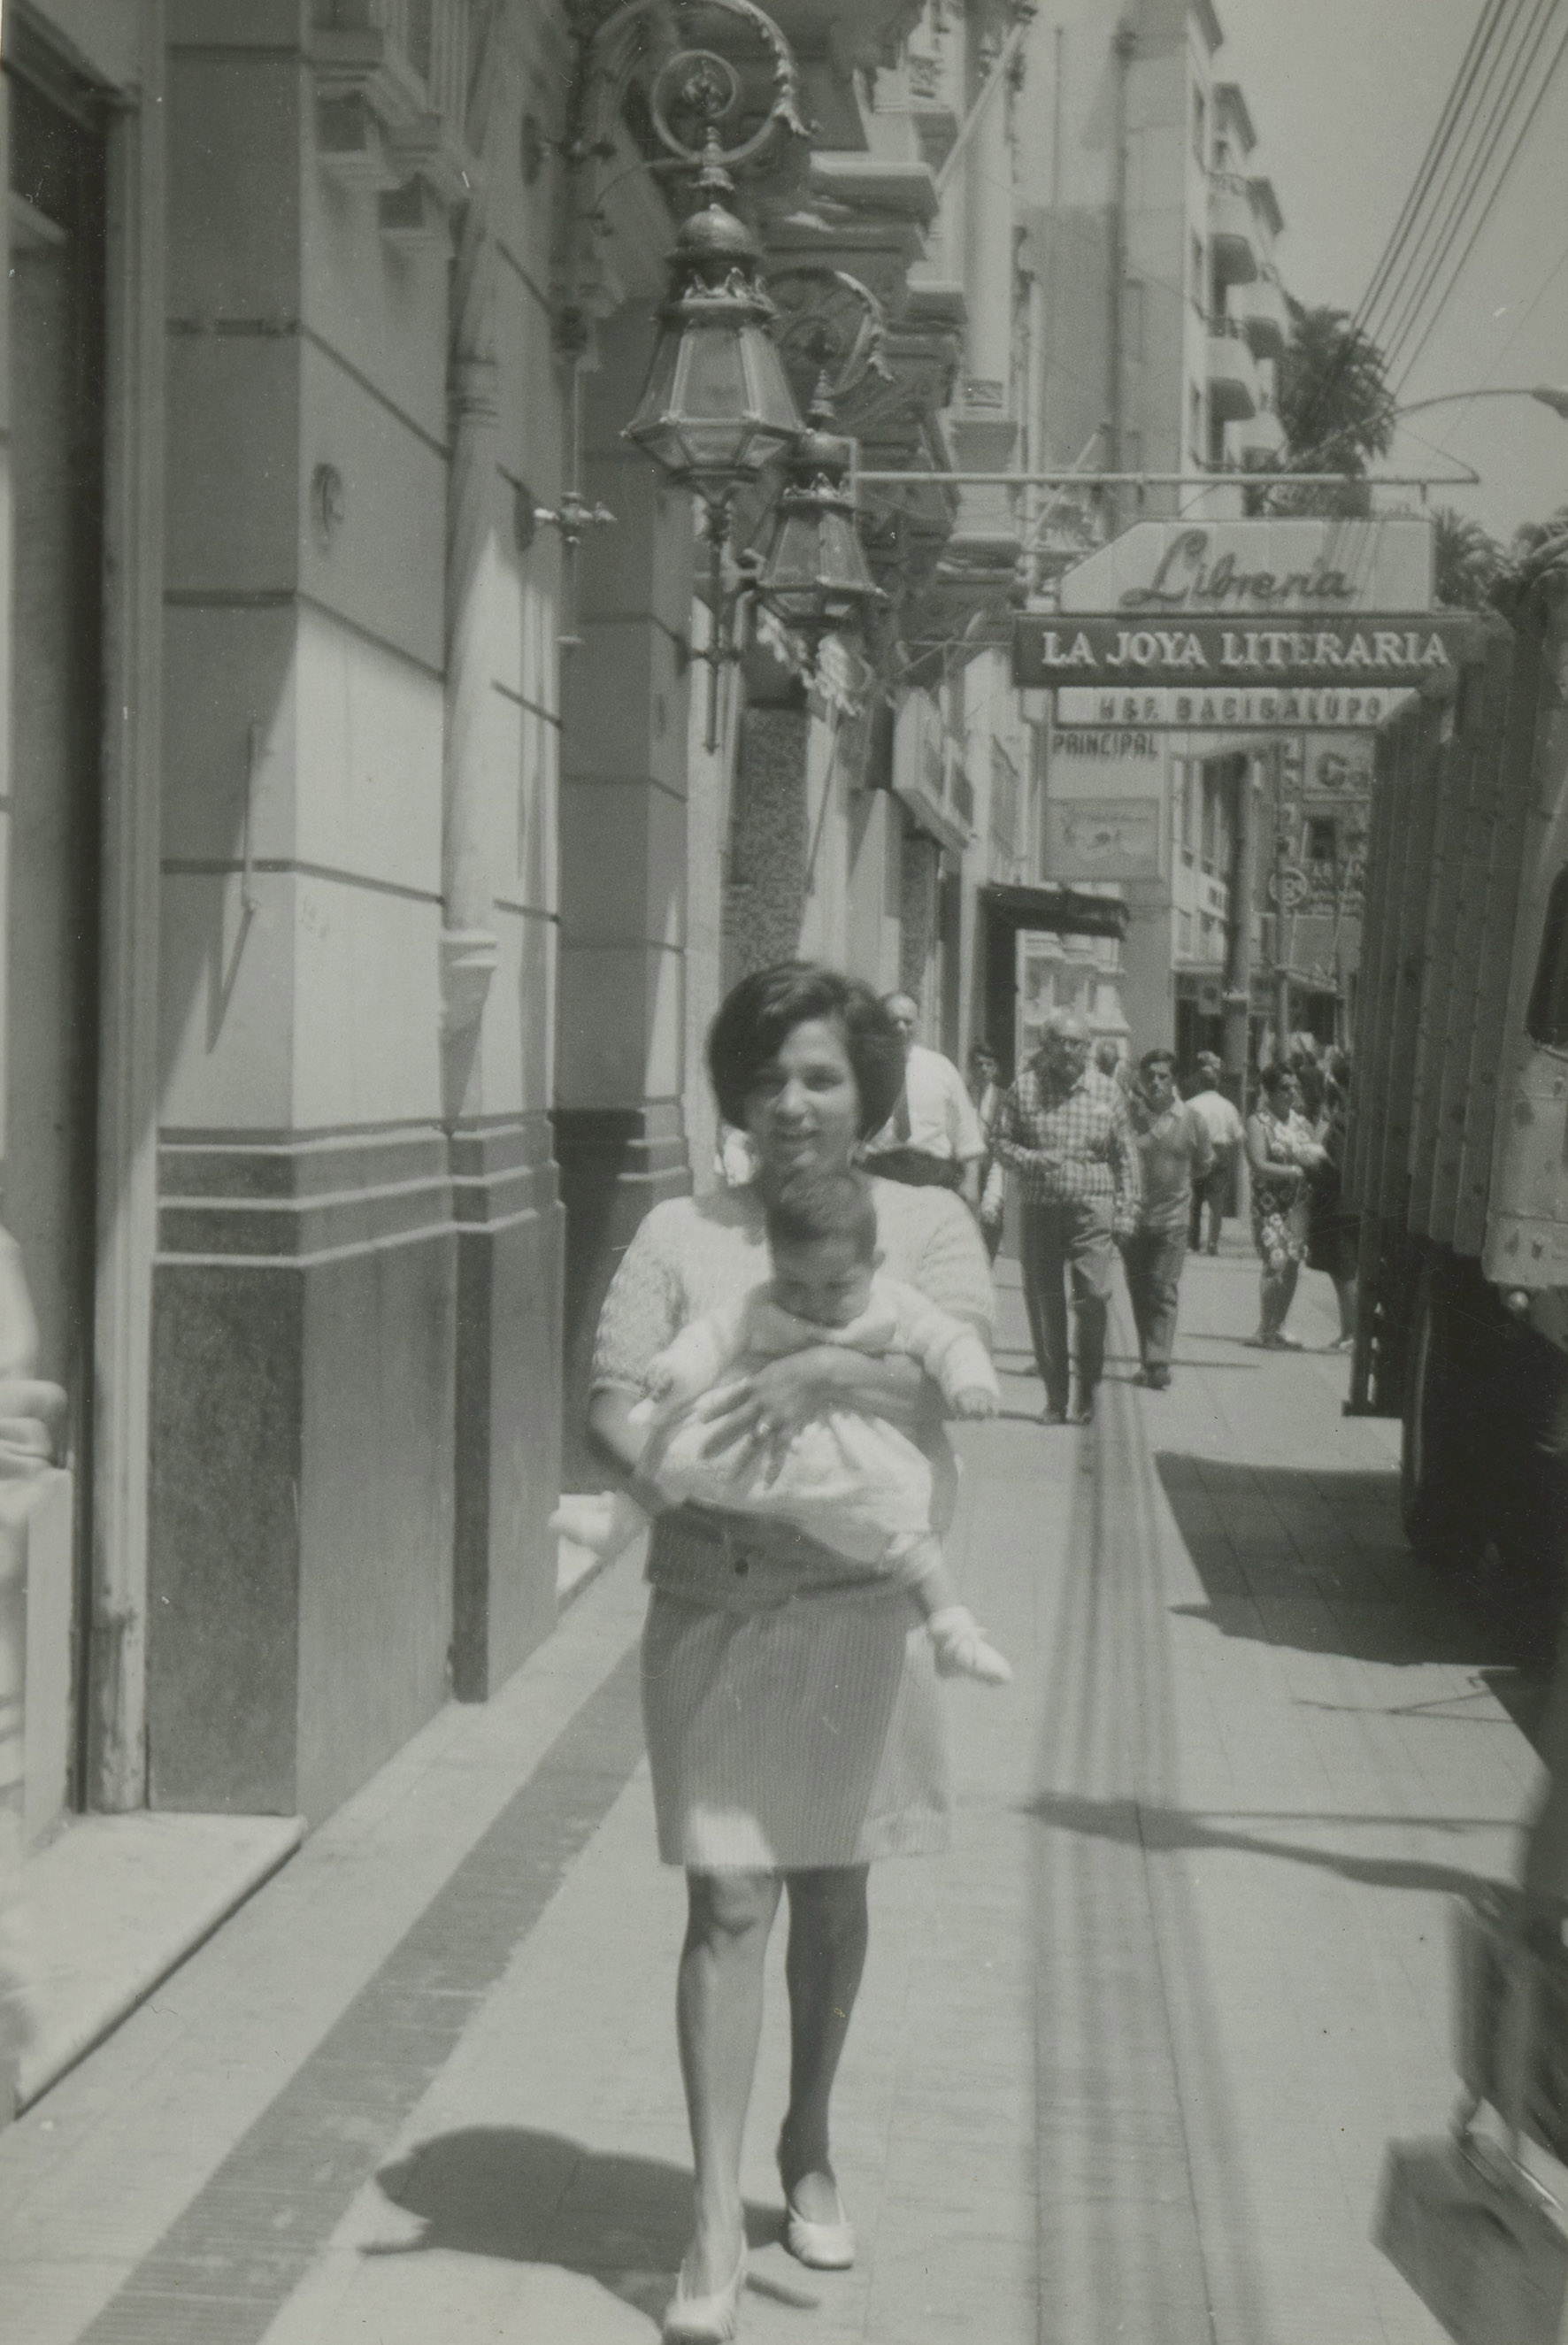 Enterreno - Fotos históricas de chile - fotos antiguas de Chile - Calle Condell, Valparaíso en 1969